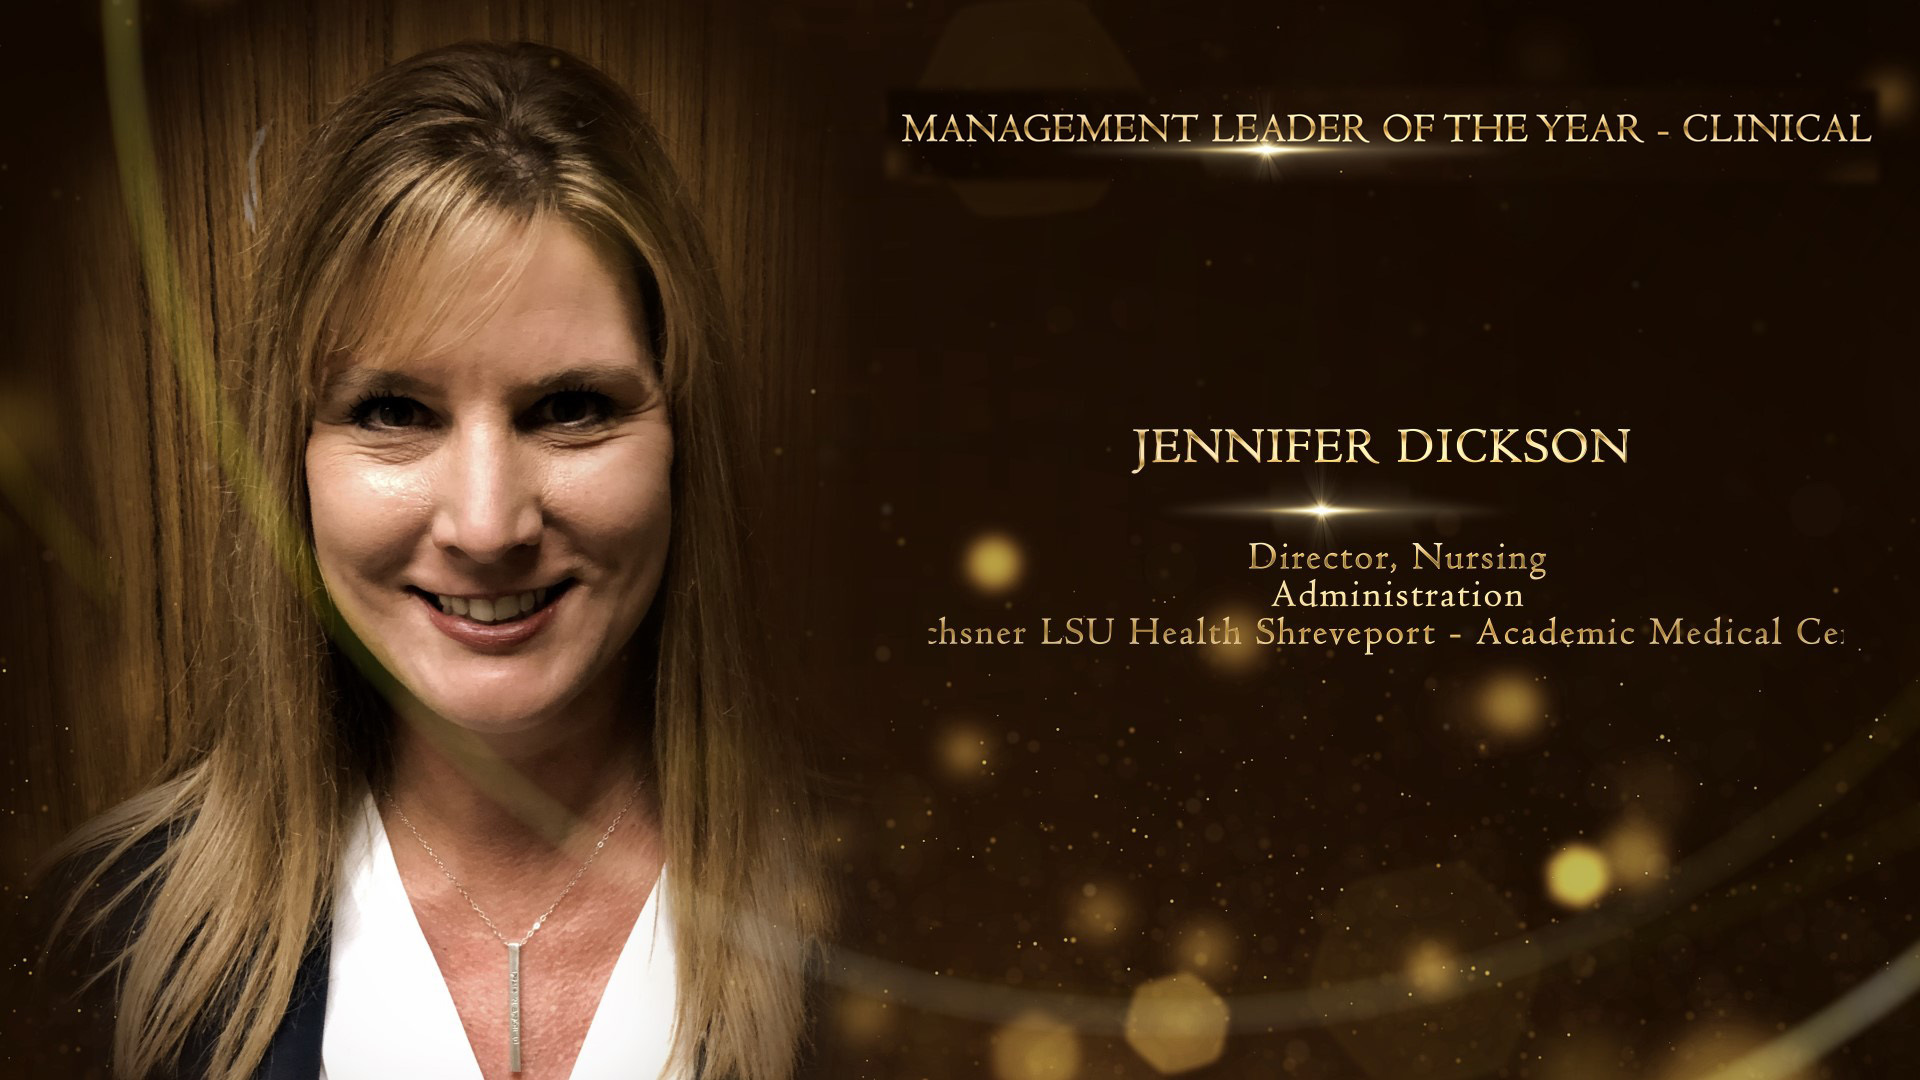 Management Leader of the Year Clinic NOM 1 2020 06 19 13 09 40